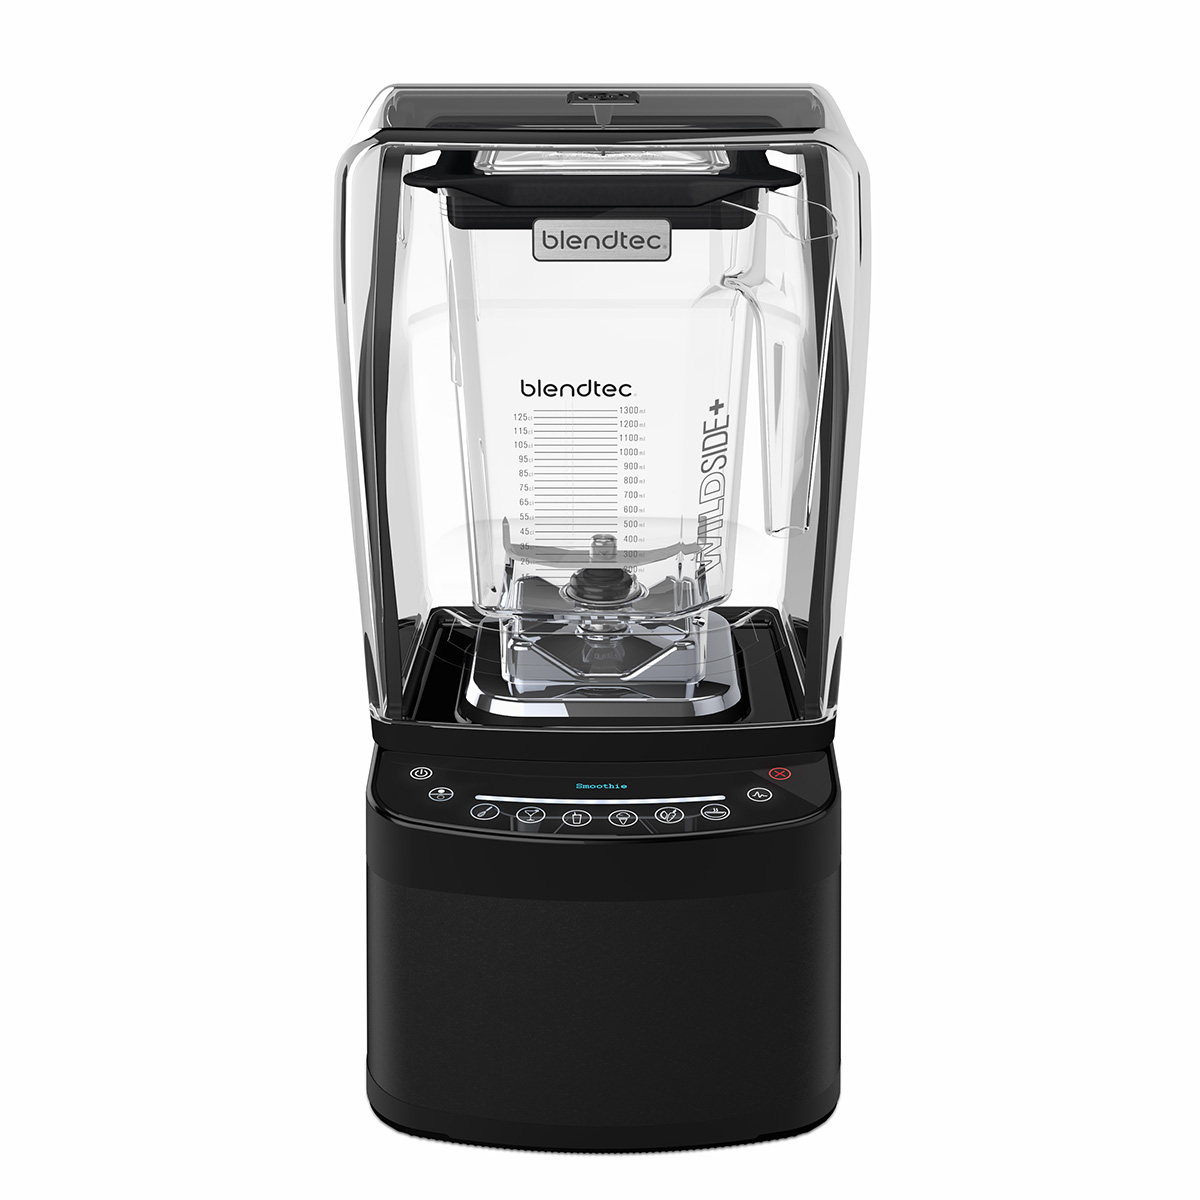 Blendtec powerblender - Pro 800 - Sort